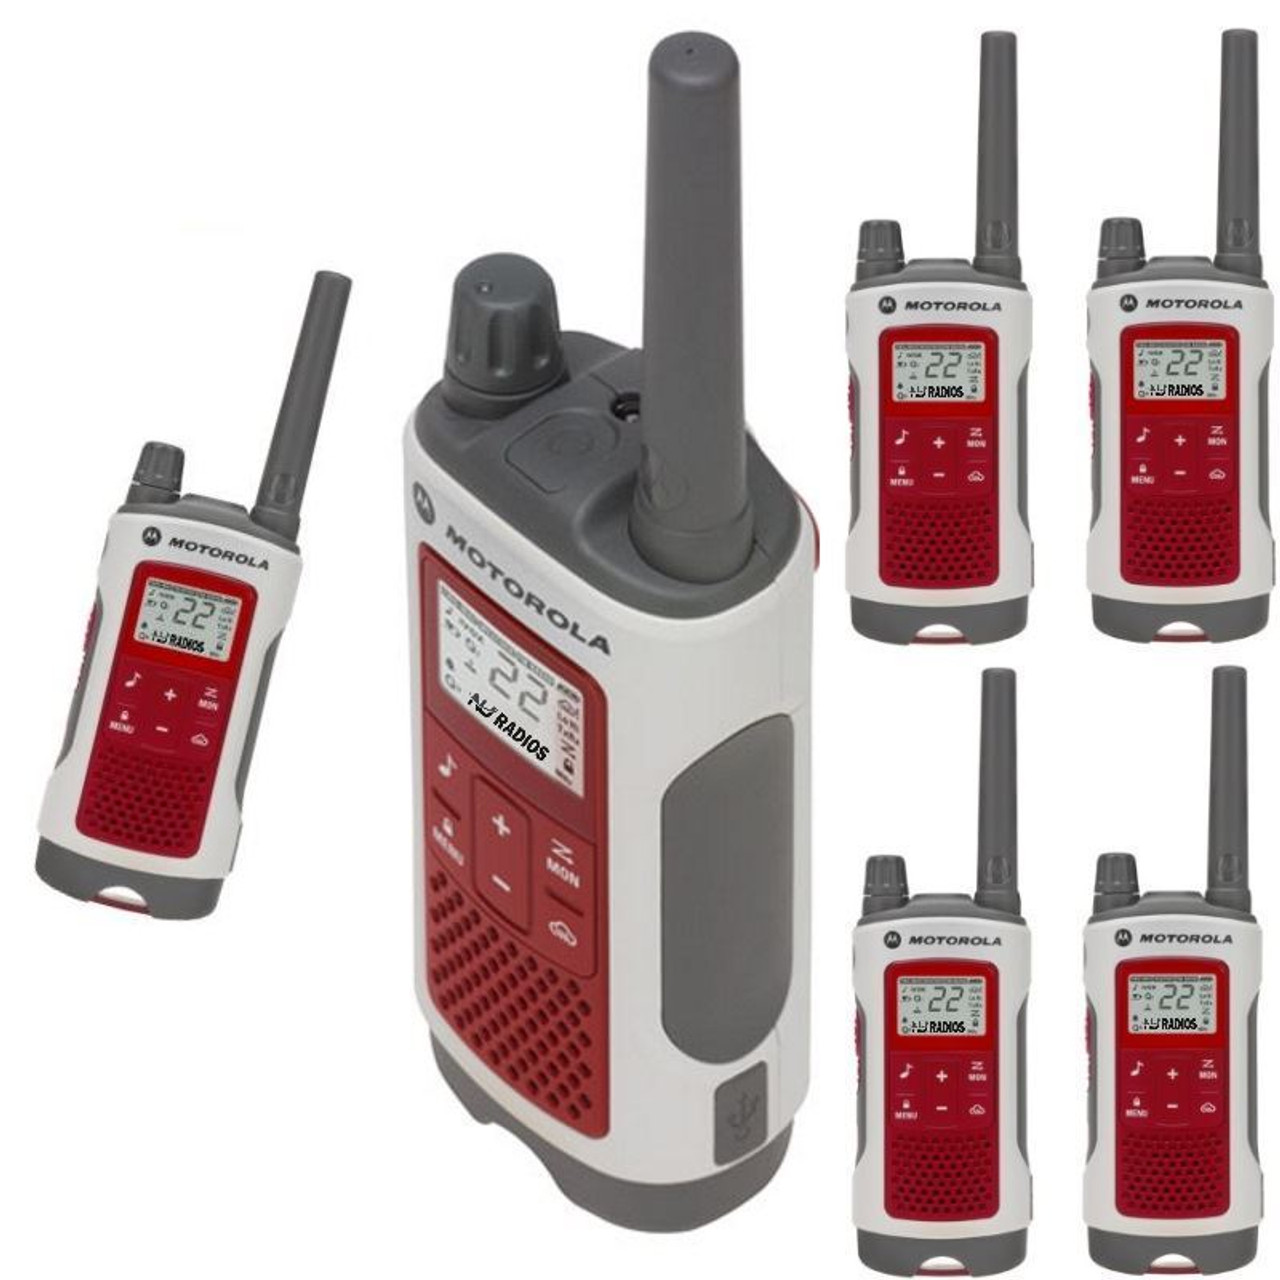 Talkabout T480 FRS/GMRS 2-Way Radios in White/Red 6-Pack